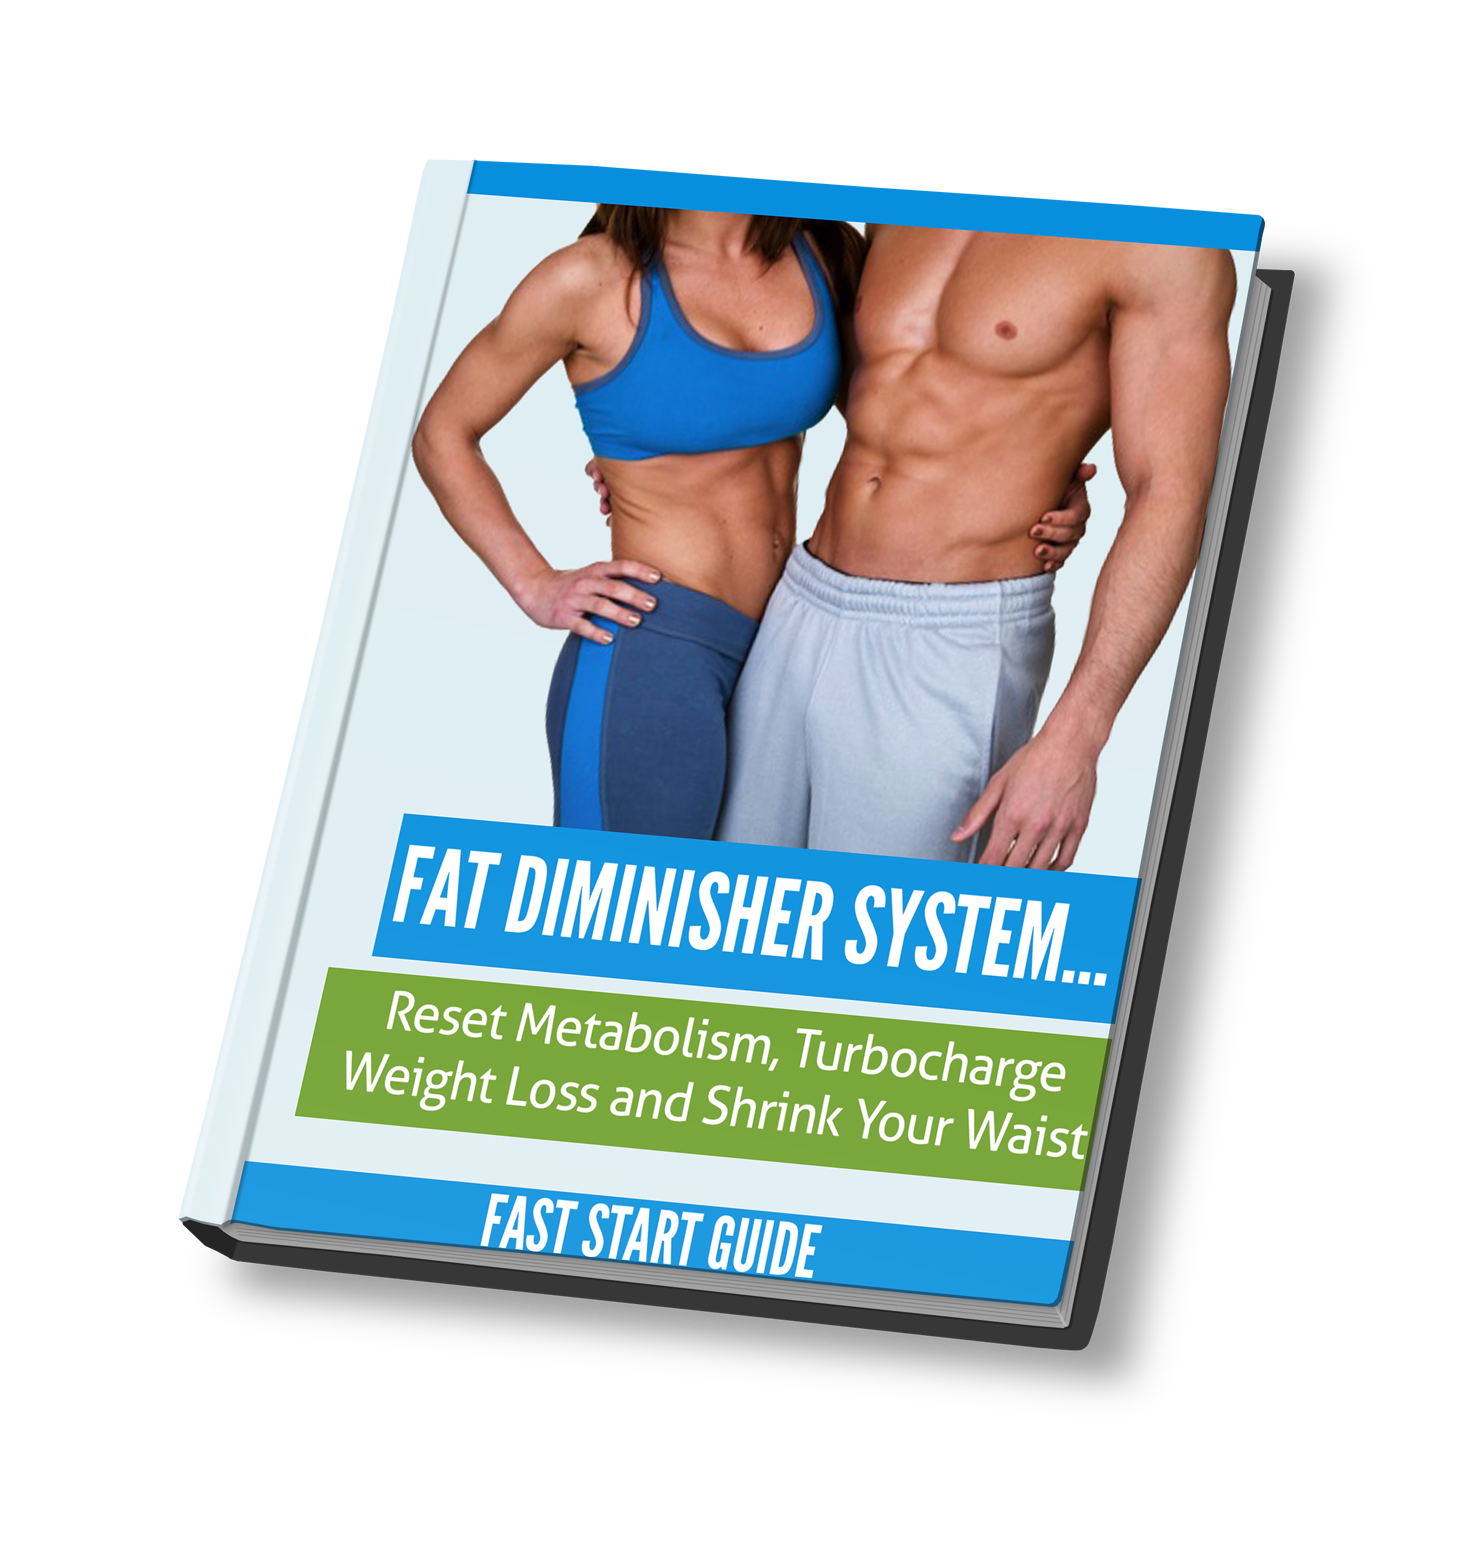 Fat Diminisher System Uses Foods To Burn The Fat